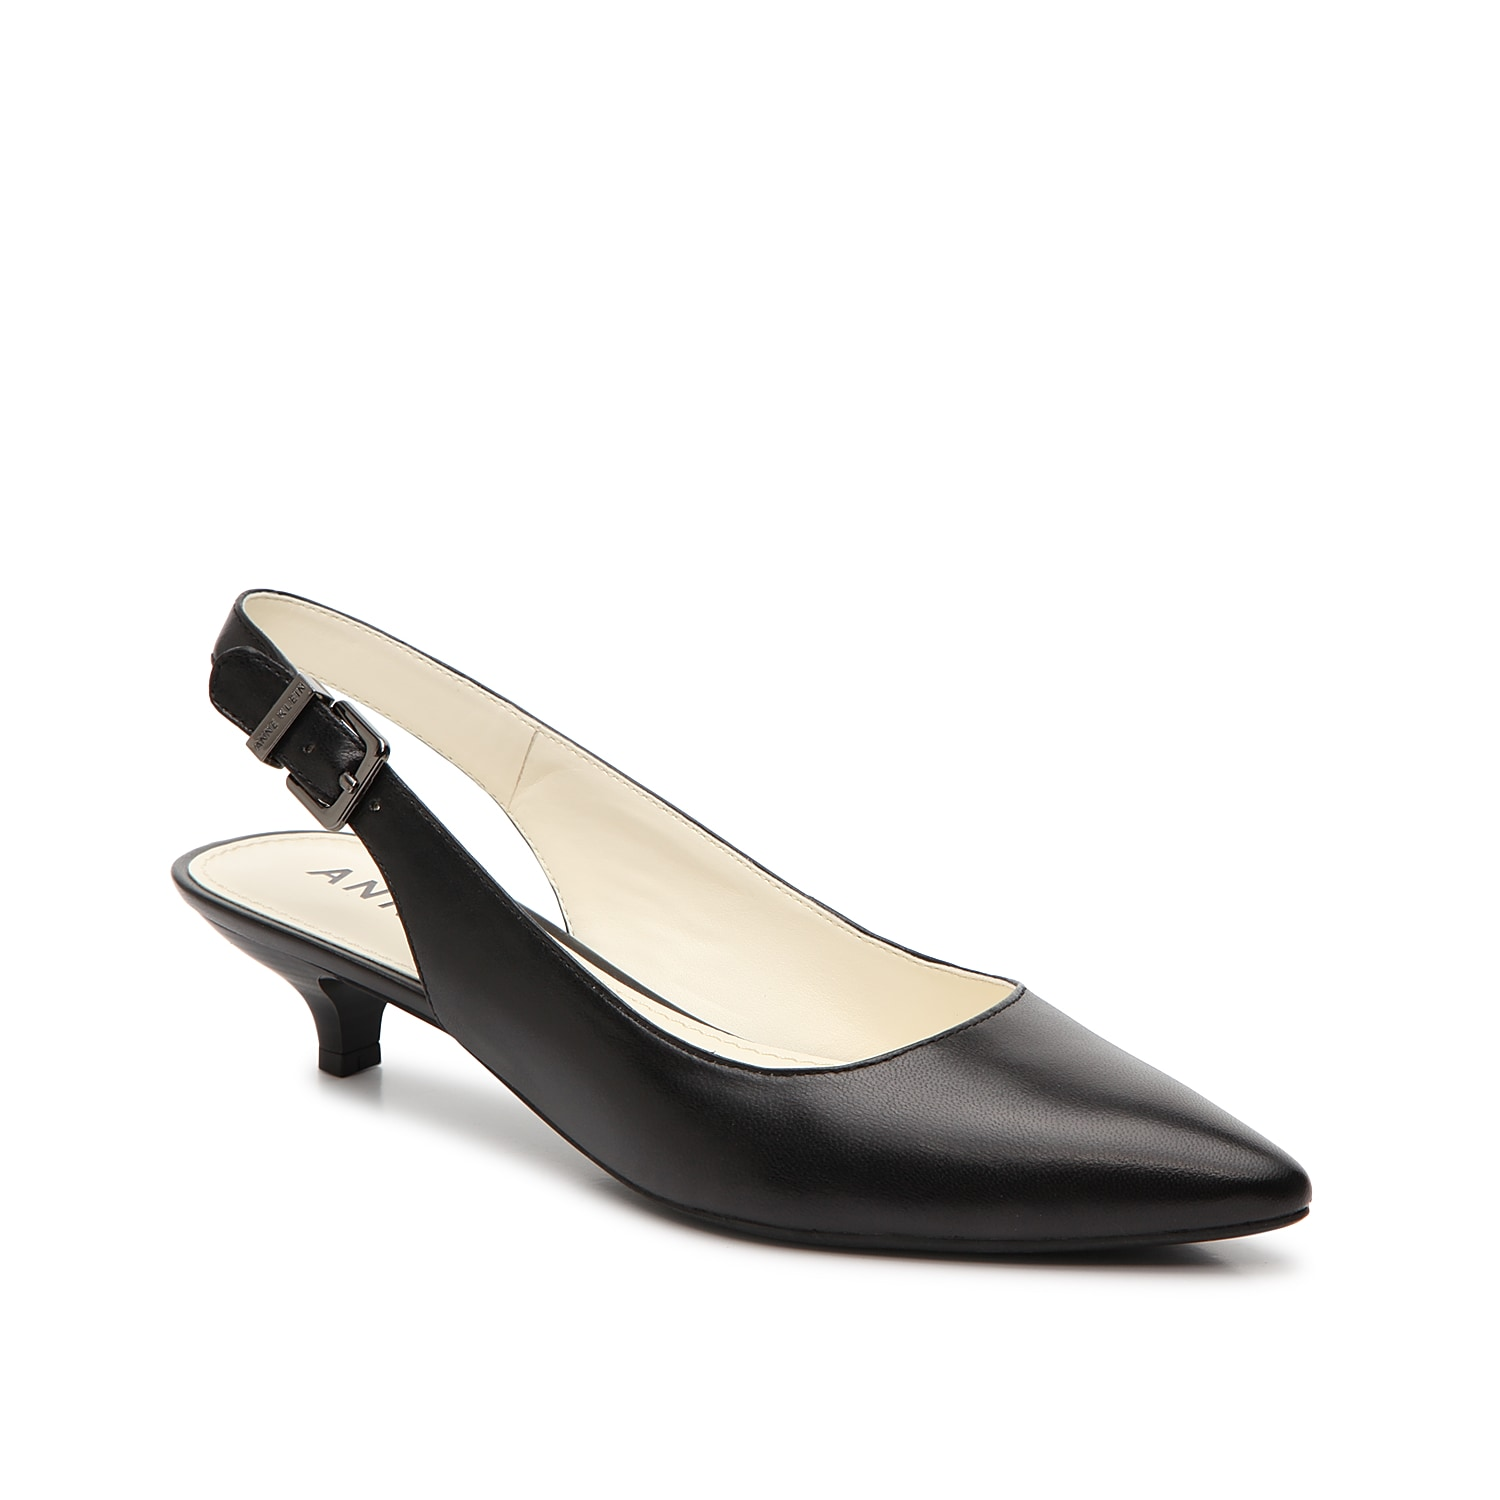 Dress to impress in the office or during date night in the Expert pump from Anne Klein. These leather slingbacks are finished with a kitten heel for classic appeal.